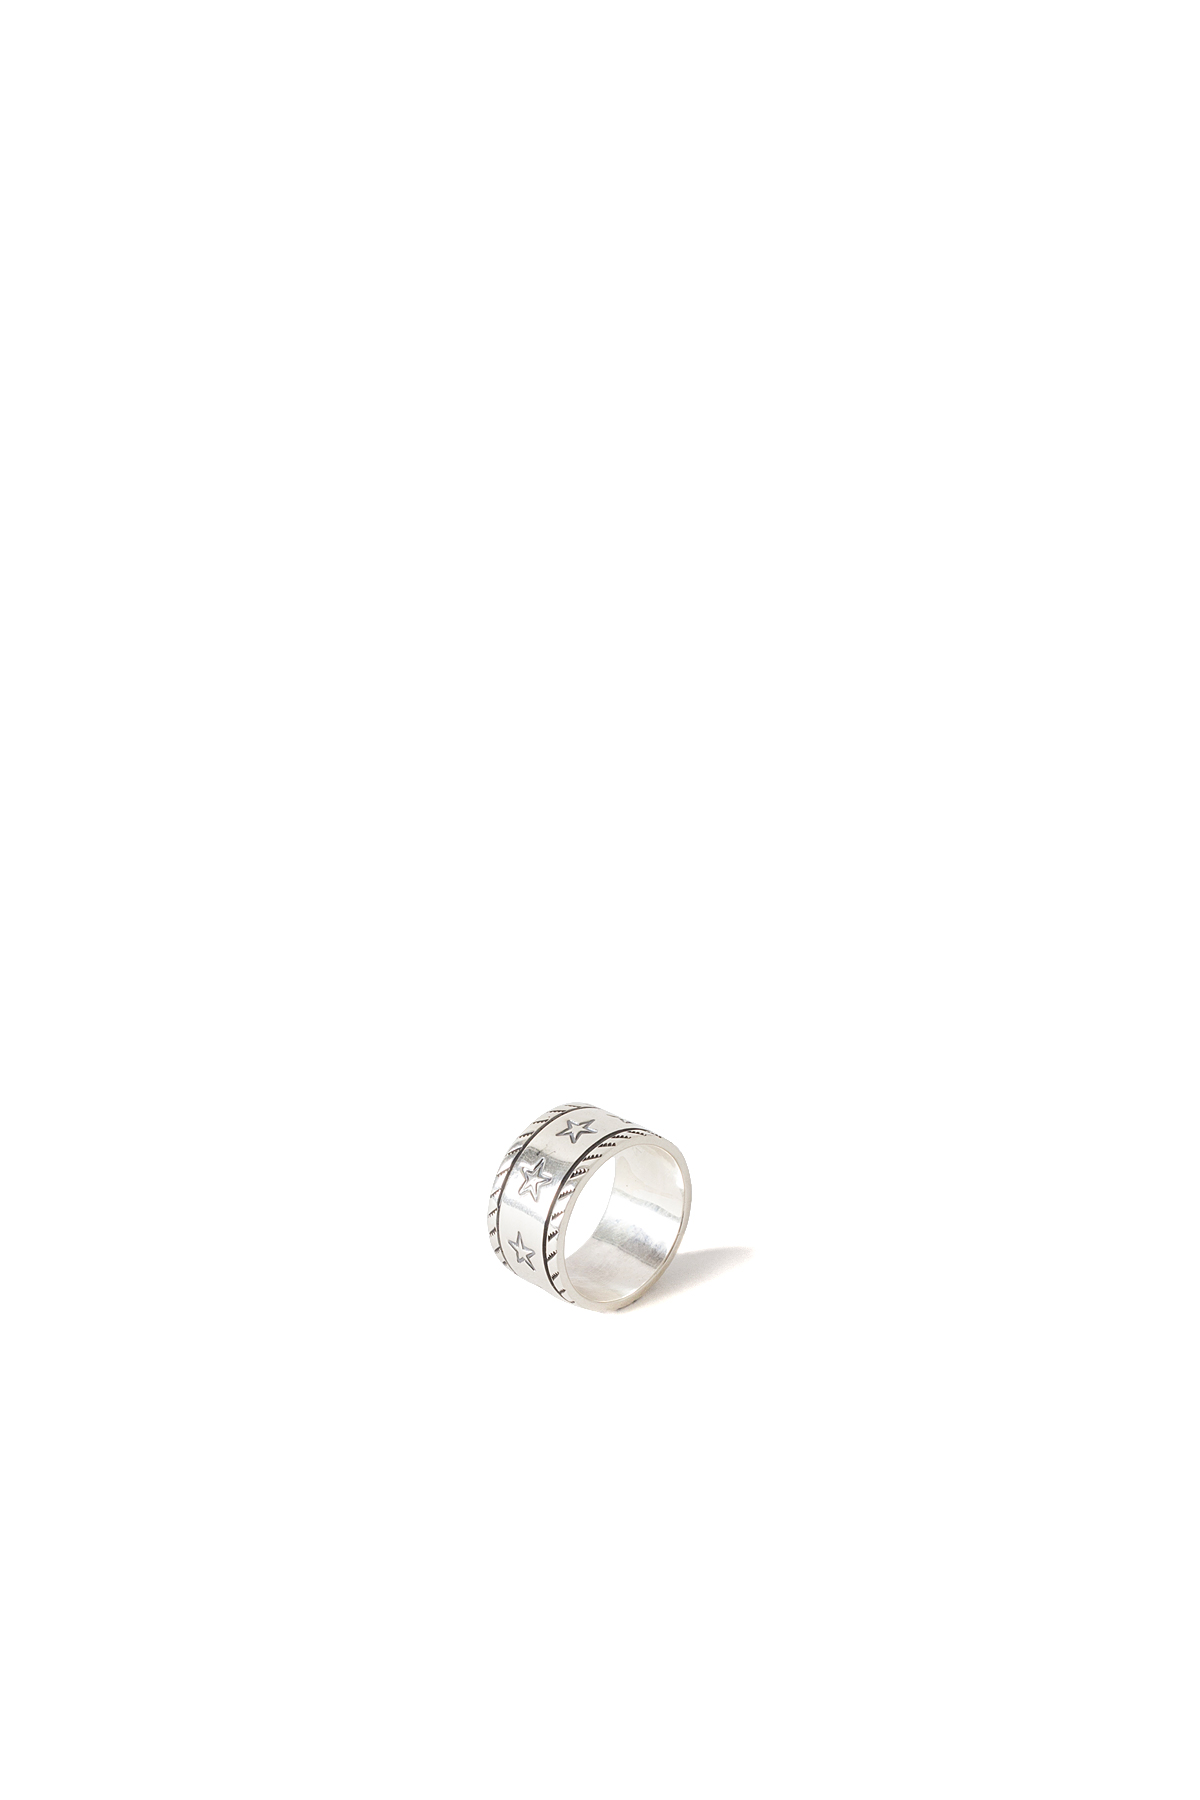 North Works : 900 Silver Stamp Ring (W-053)